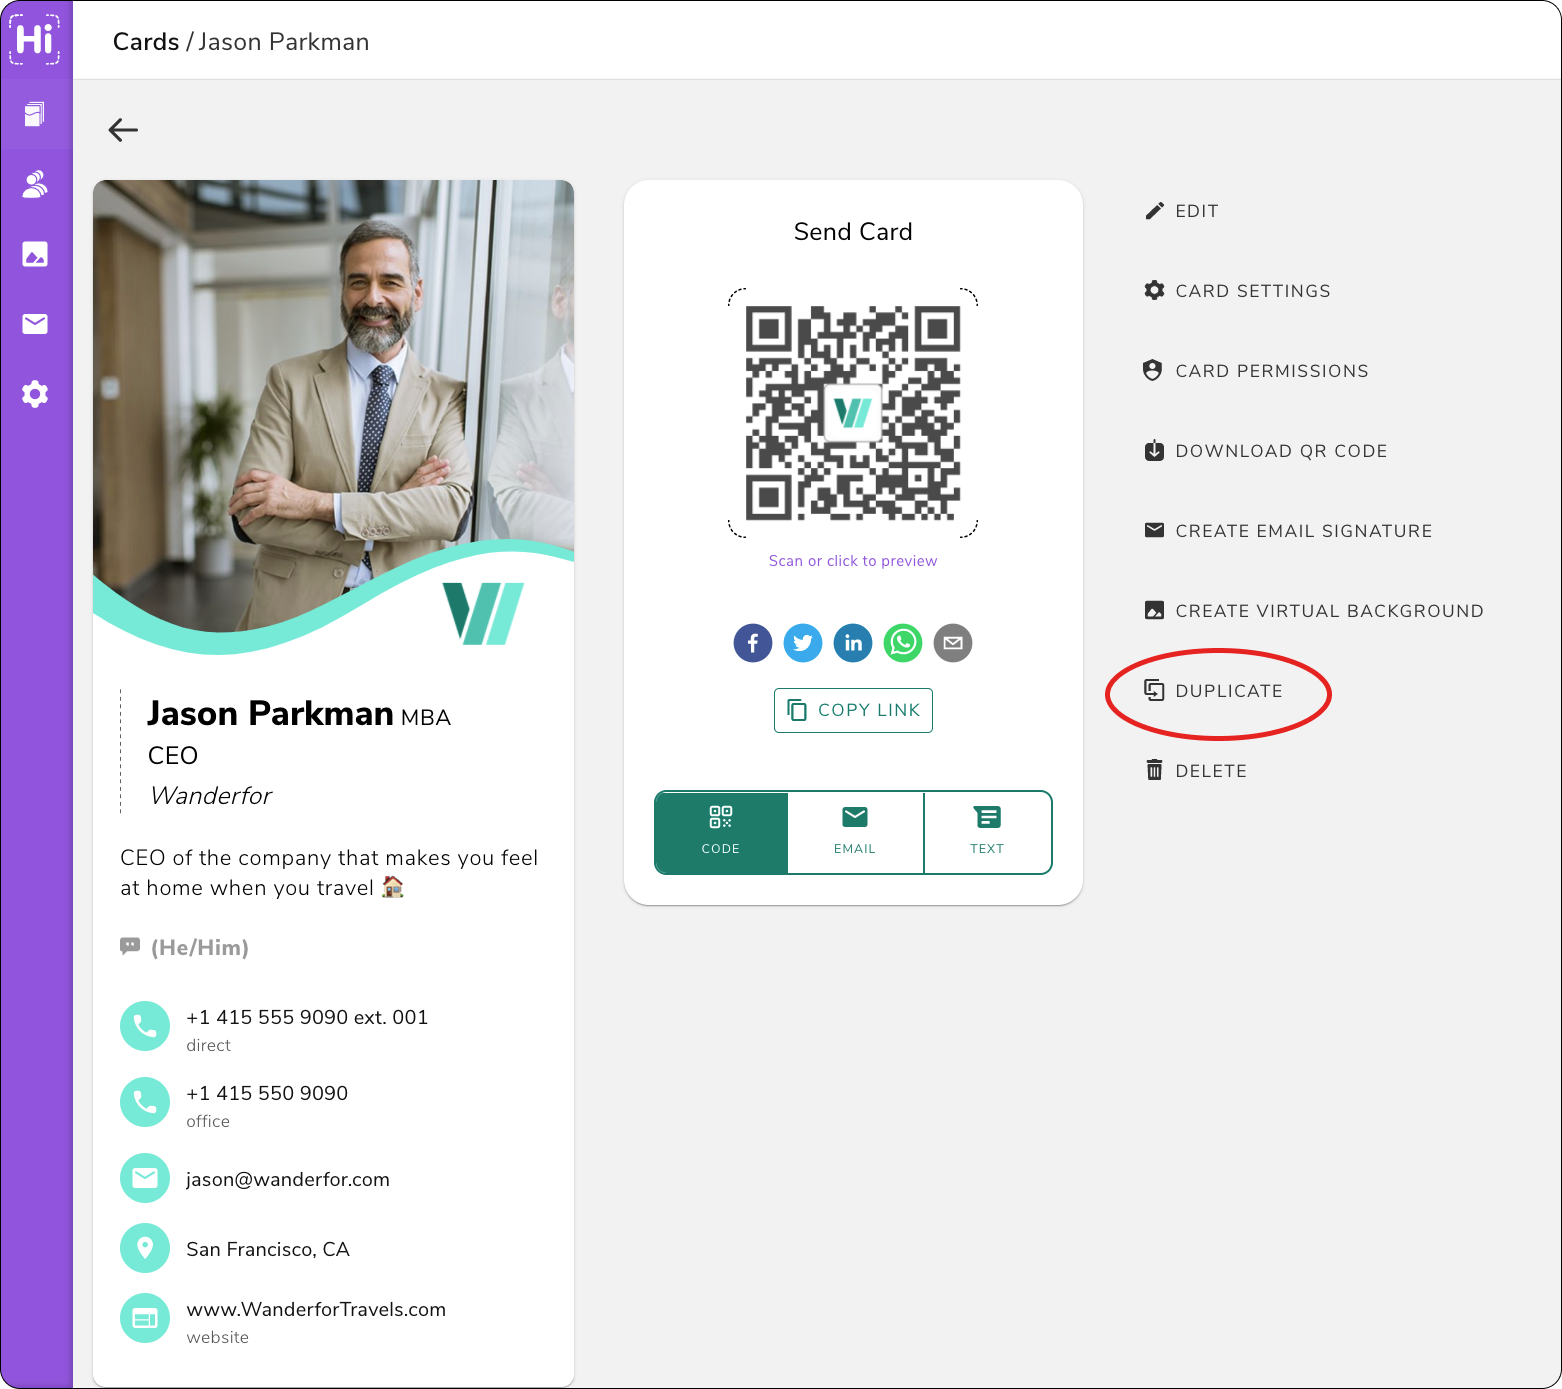 Save time making virtual cards for your employees by duplicating your digital business card on HiHello Business.